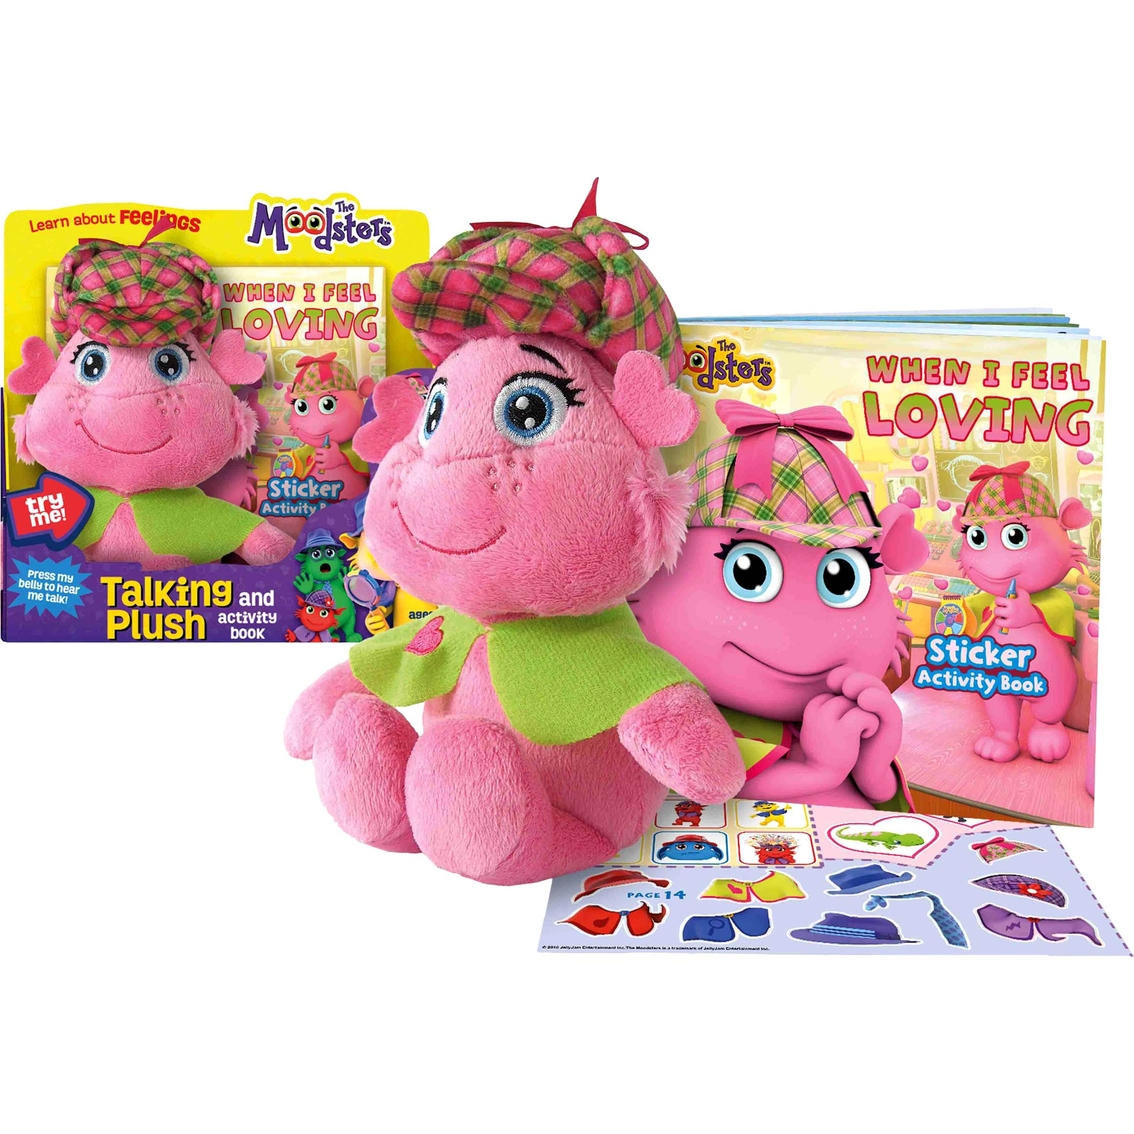 Moodsters Plush With Sound Activity Book Lolly Childrens Books Sticker My Pretty Pink